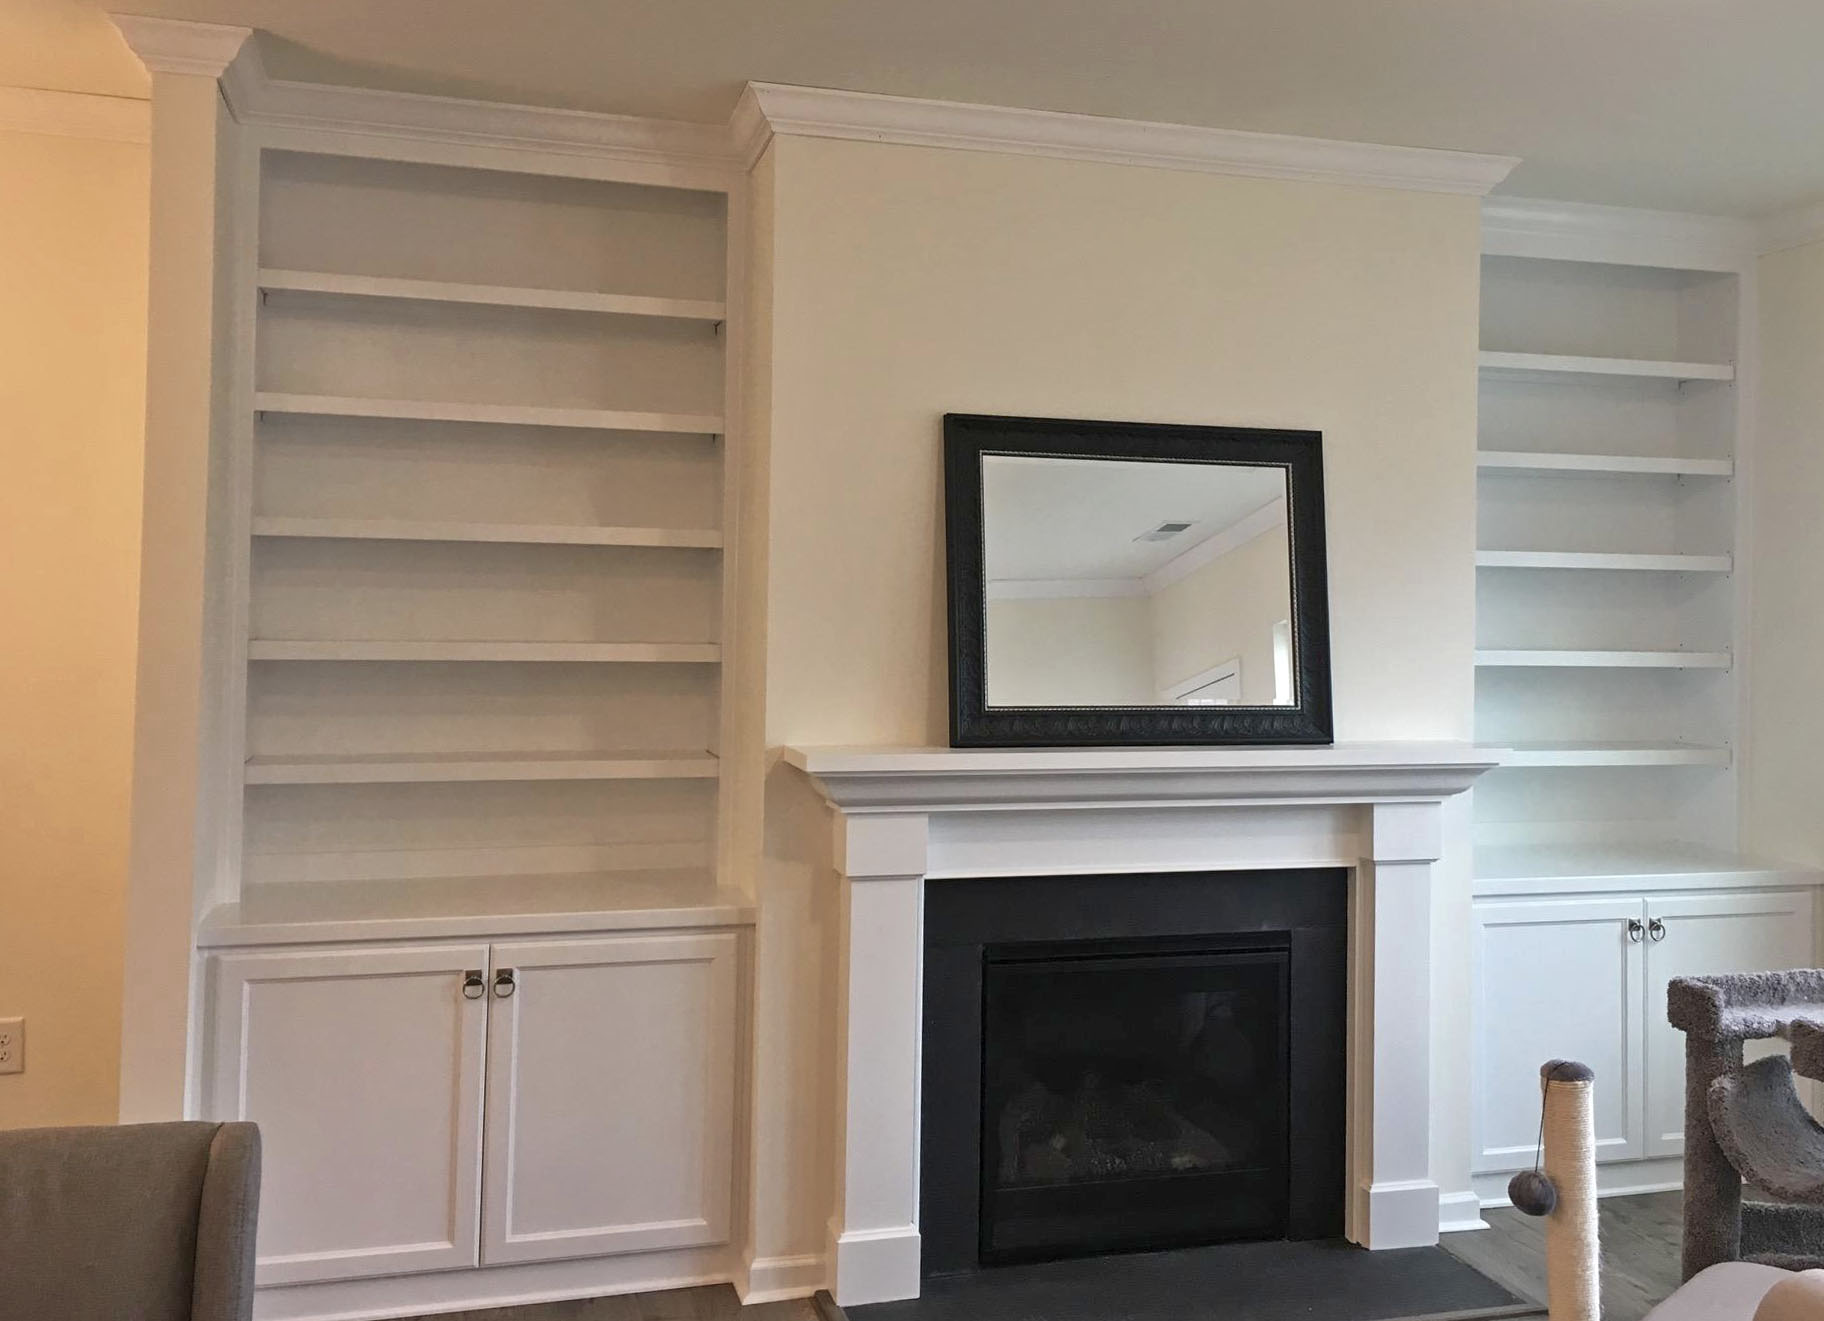 Fireplace Built-Ins with Adjustable Shelves, Shaker Doors, and Crown